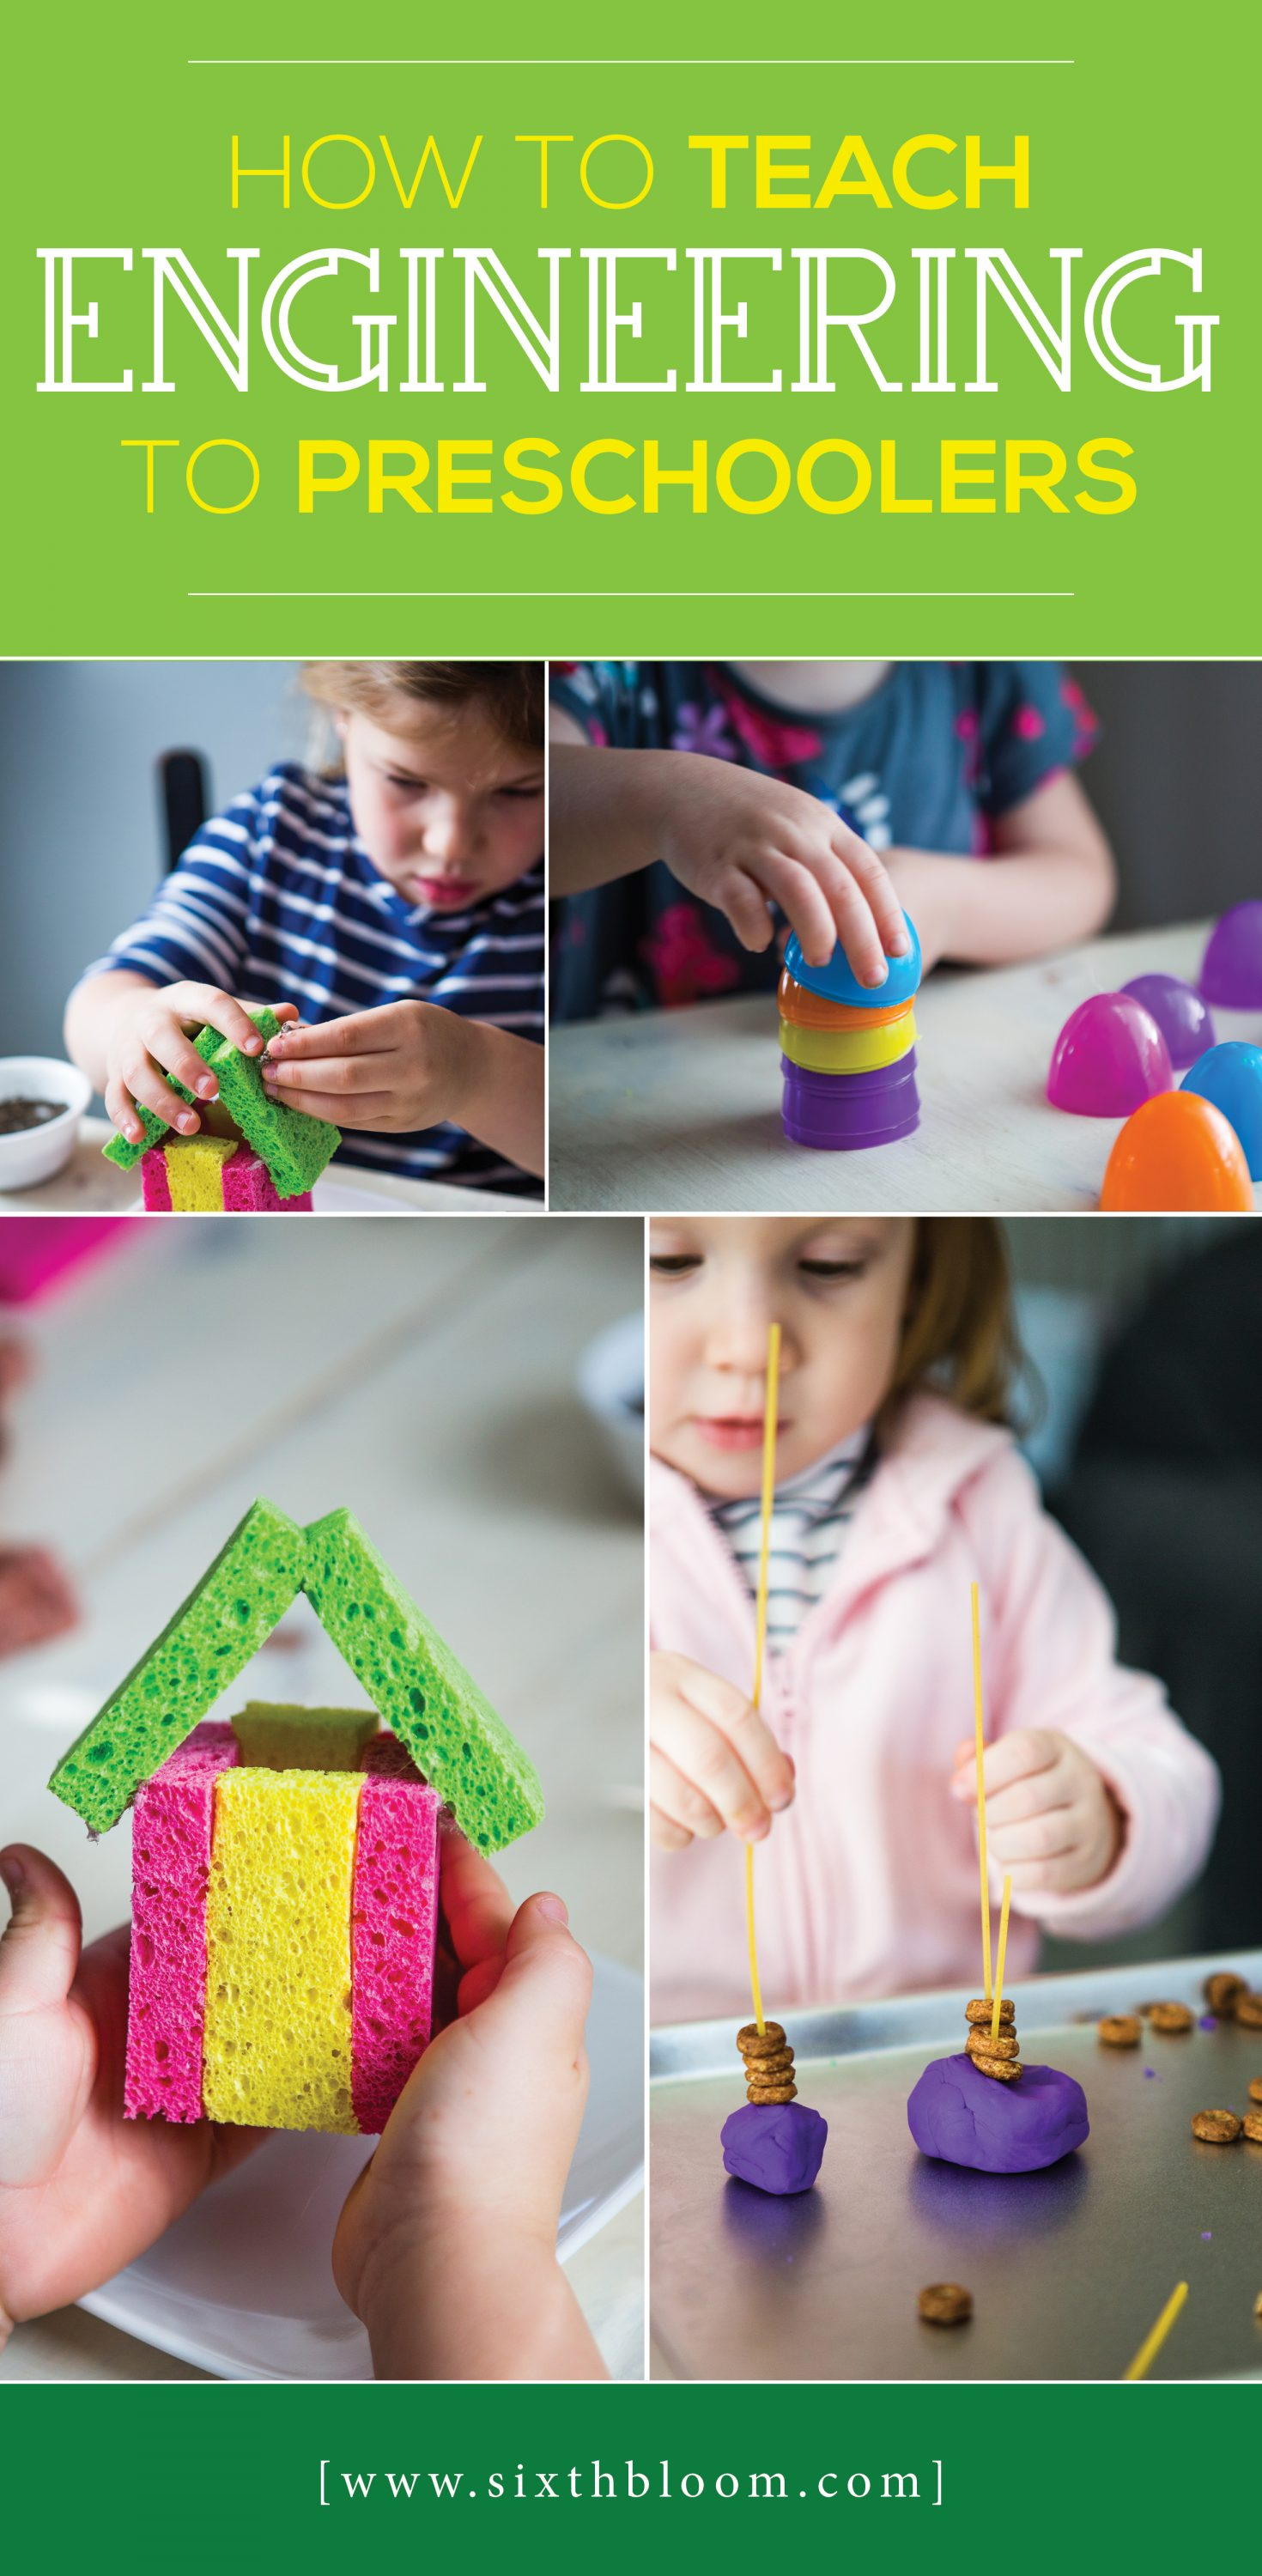 engineering to preschoolers  #STEAM #STEAMActivities #STEMKids #STEM #EngineeringActivities #preschool #preschooler #preschoollearning #STEAMpreschool